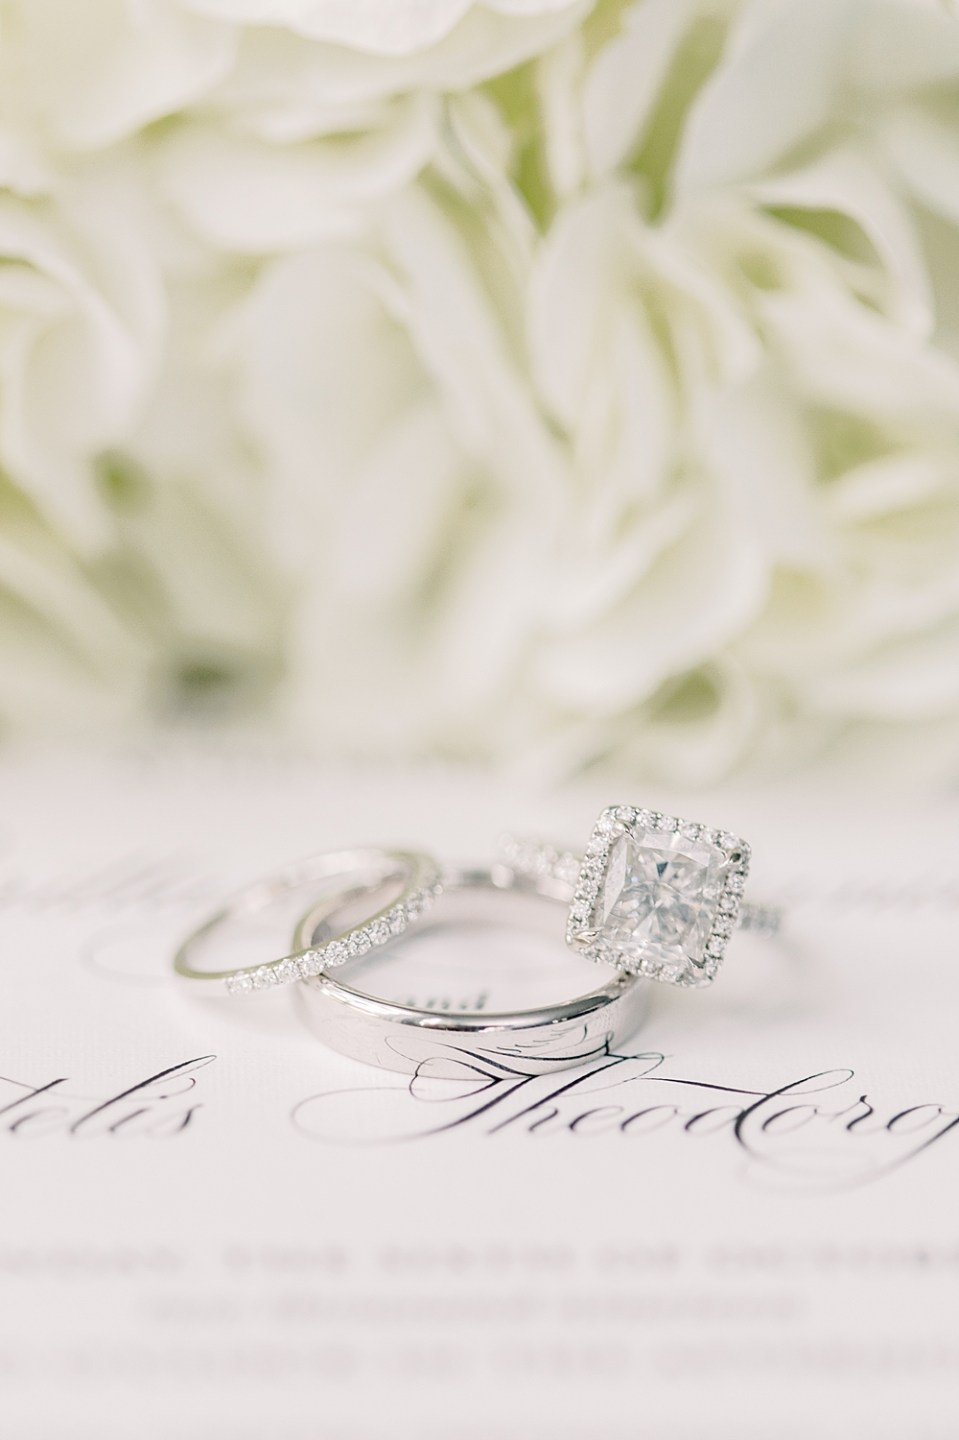 cushion cut halo engagement ring | new jersey wedding photographer sarah canning